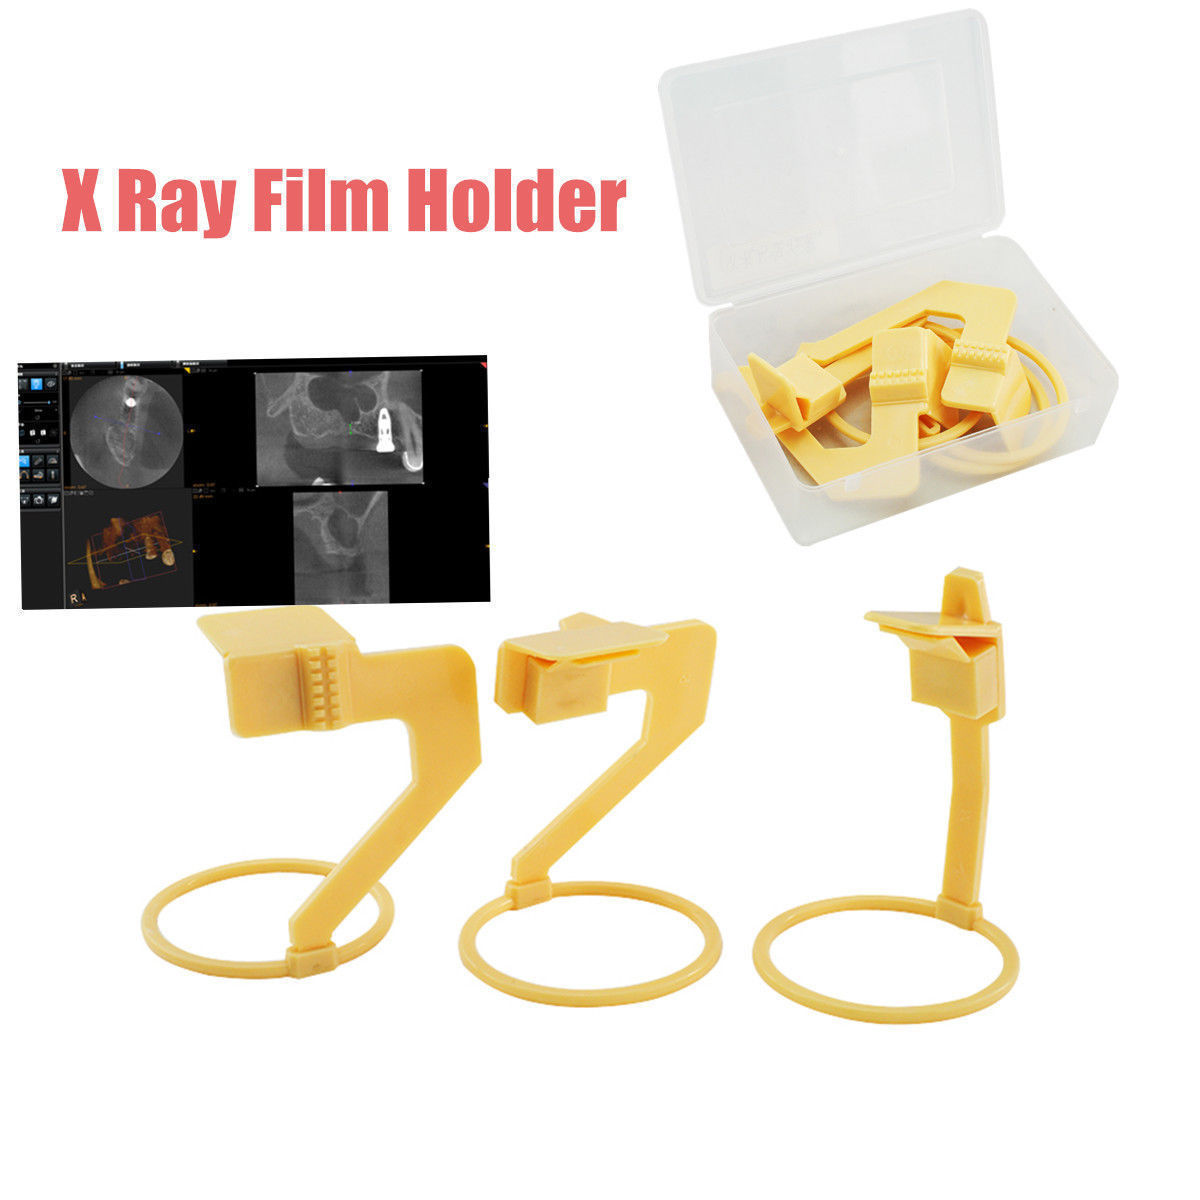 3pcs Dental x-ray Film Positioning System Positioner Holder Locator Dentist Product Plastic Material 100 pcs dental x ray film size 30 x 40mm for dental x ray reader scanner machine